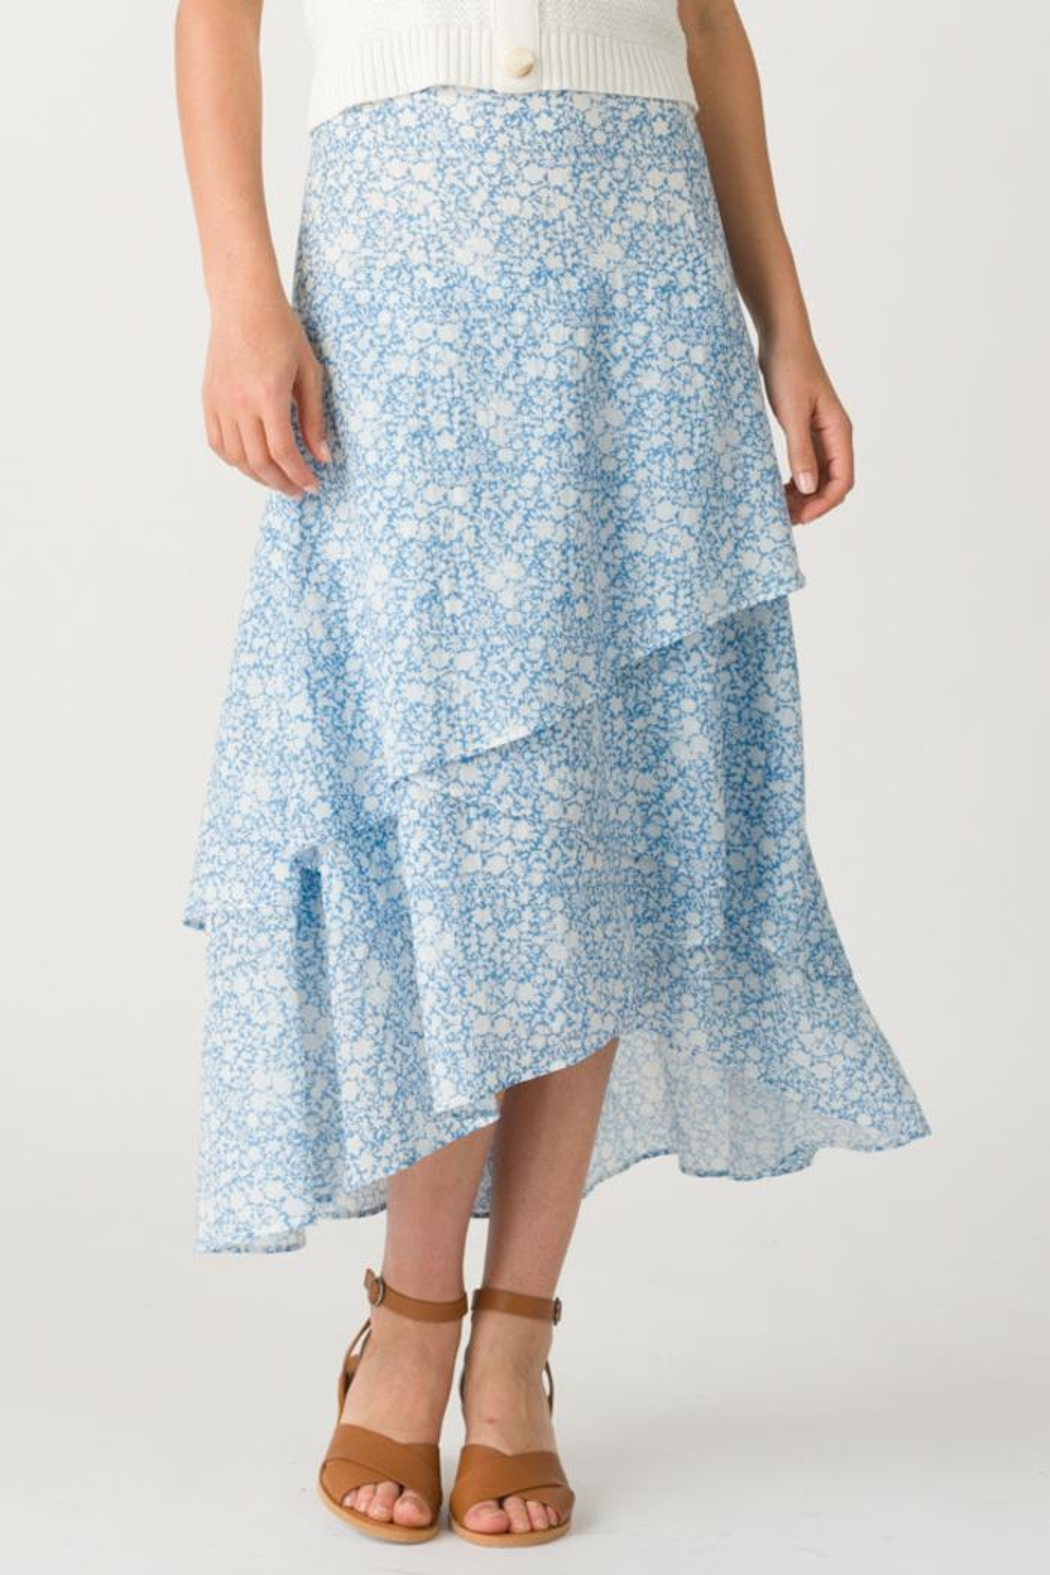 Margaret O'Leary Sonia Tiered Skirt - Main Image